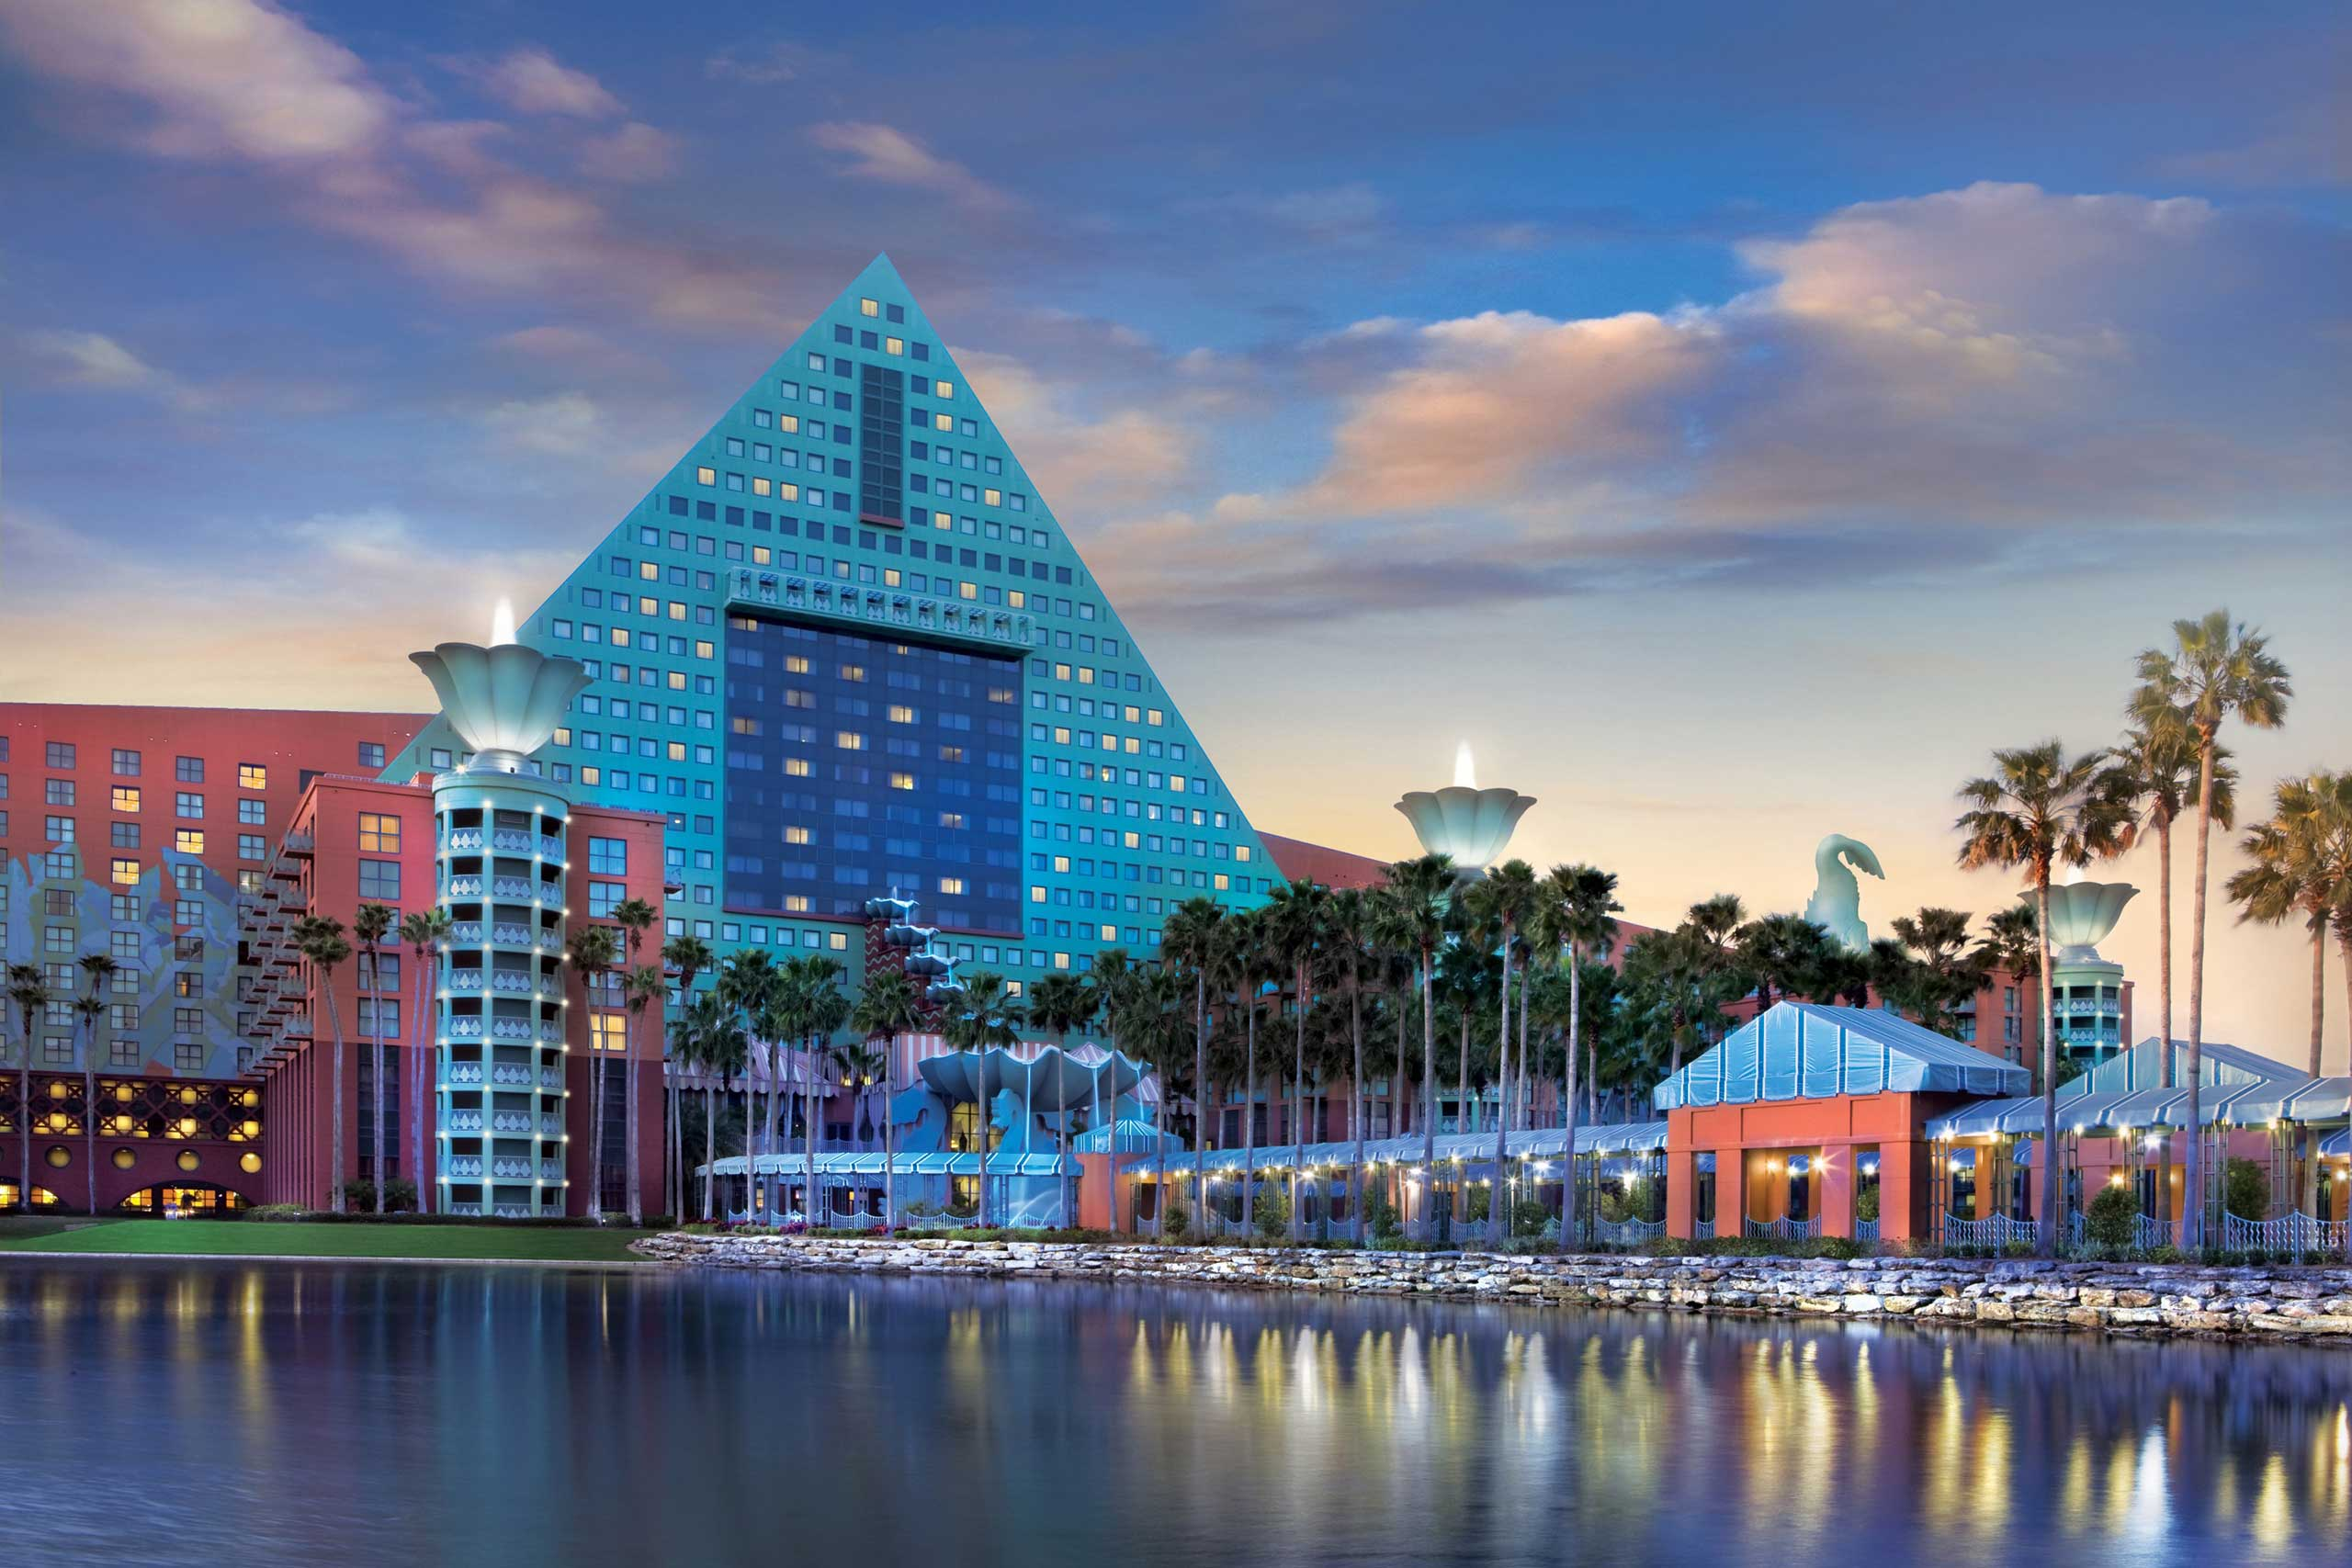 Disney World Dolphin Resort